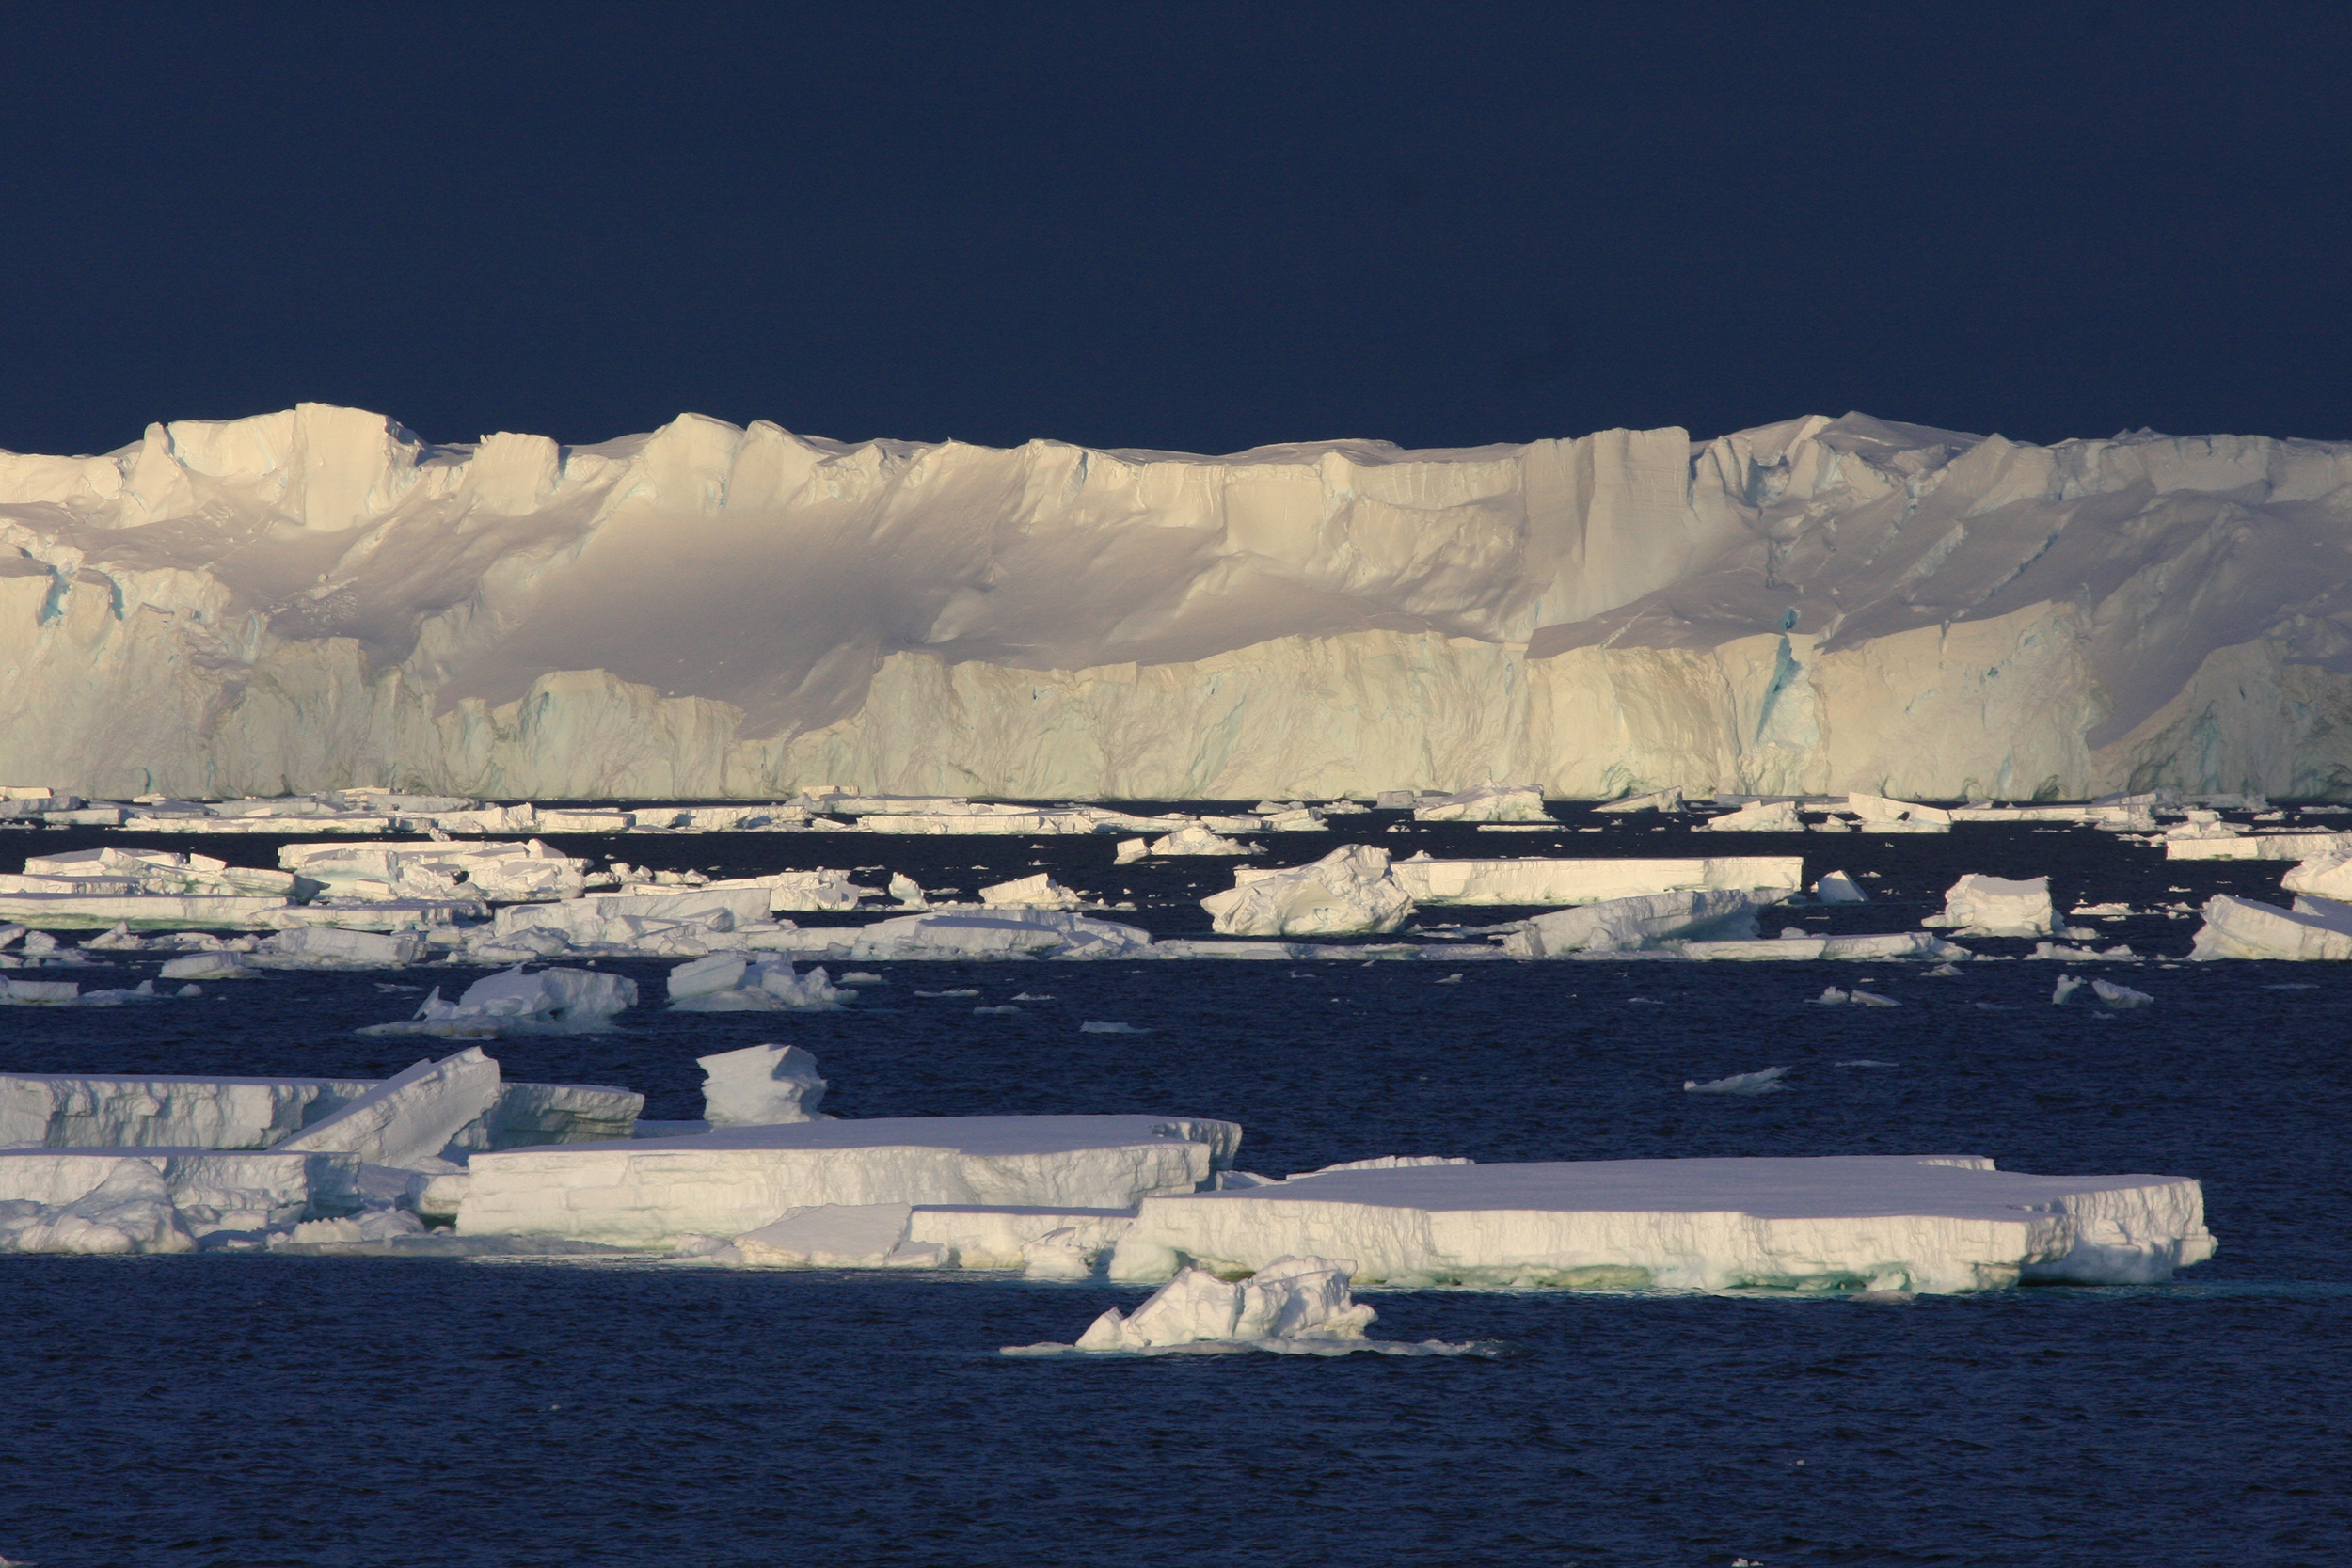 Warm ocean melting East Antarctic ice from beneath